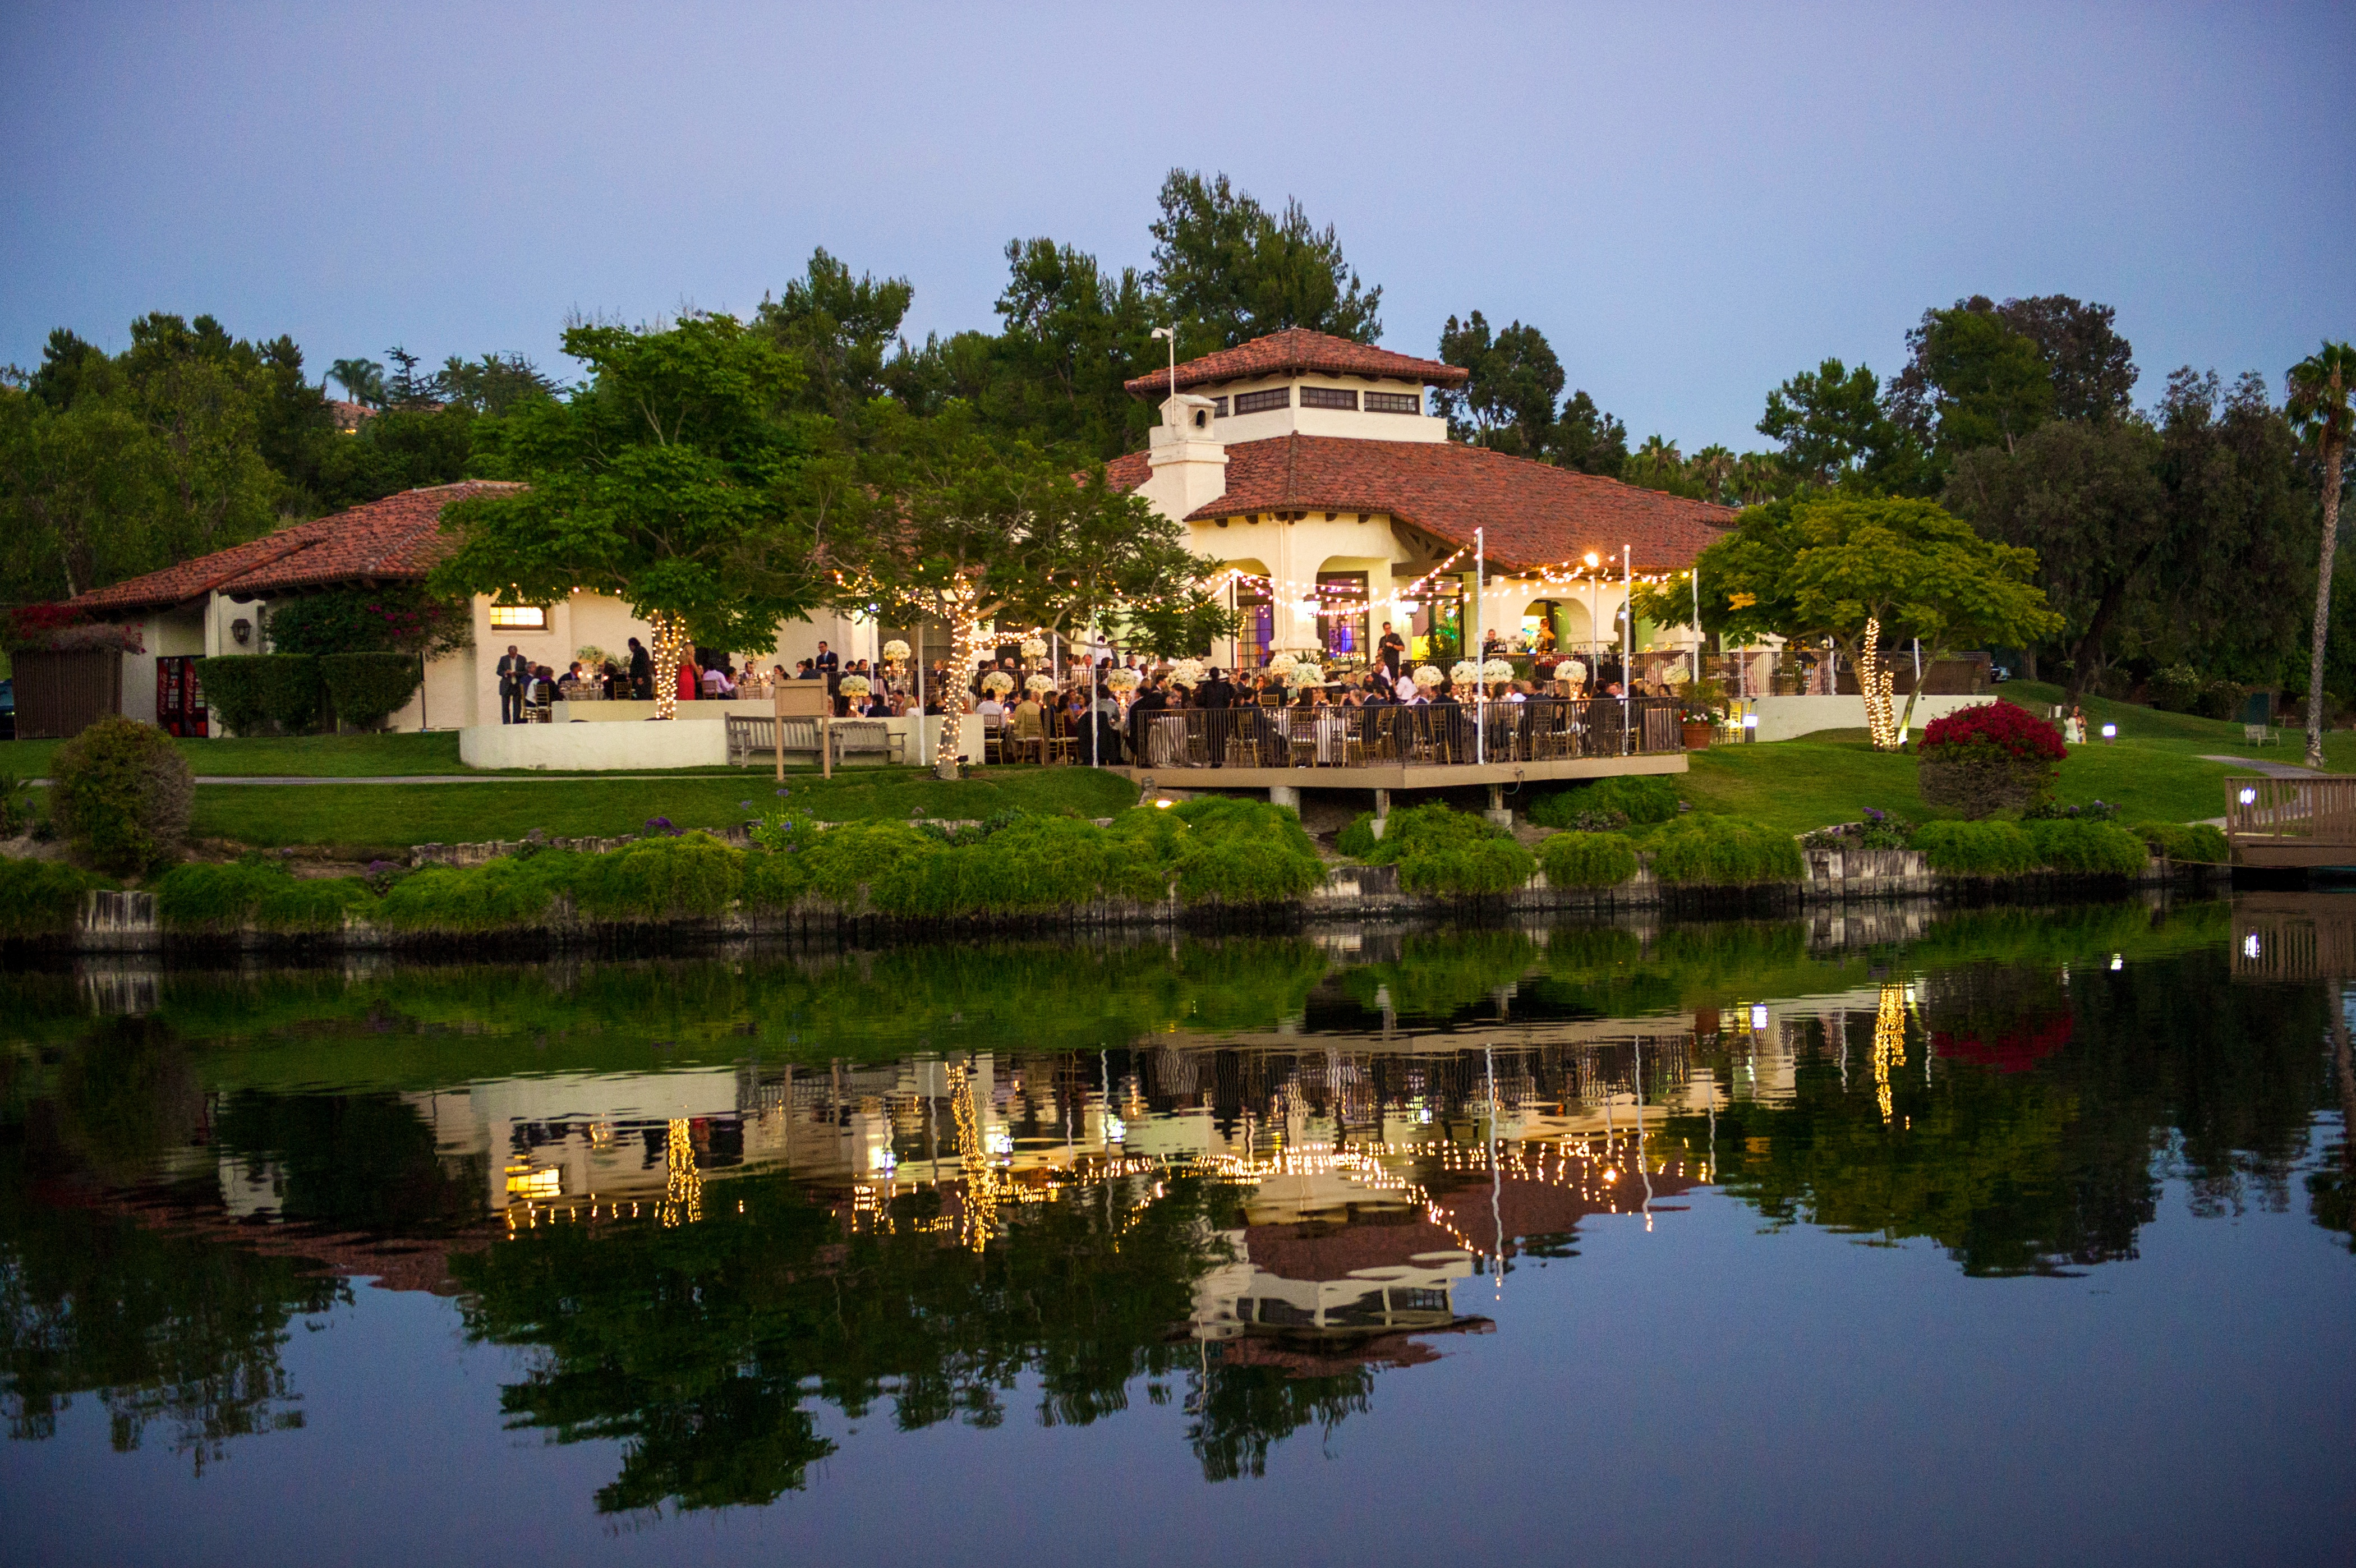 Fairbanks ranch clubhouse,  FBRC